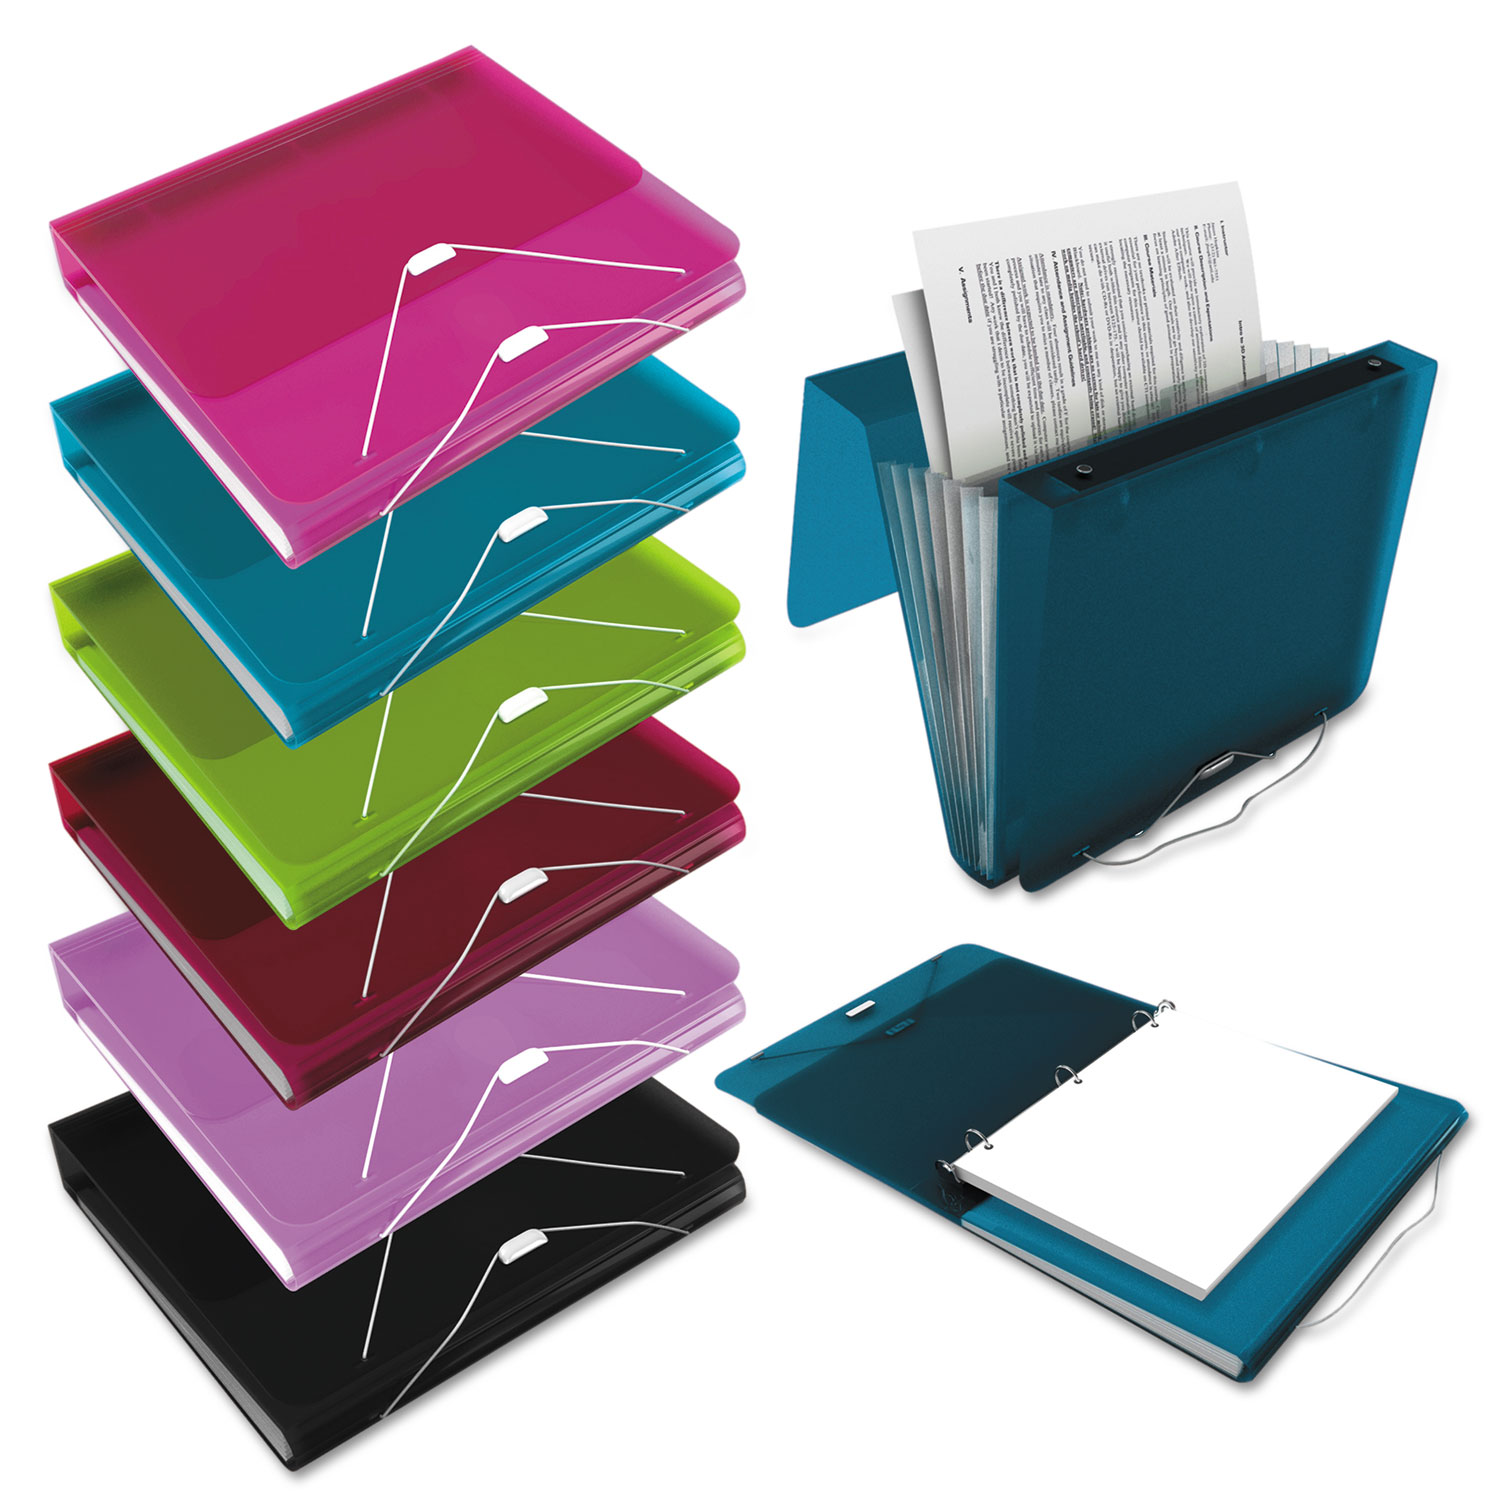 Look At DUO 2-in-1 Binder Organizer And Other 3 Ring